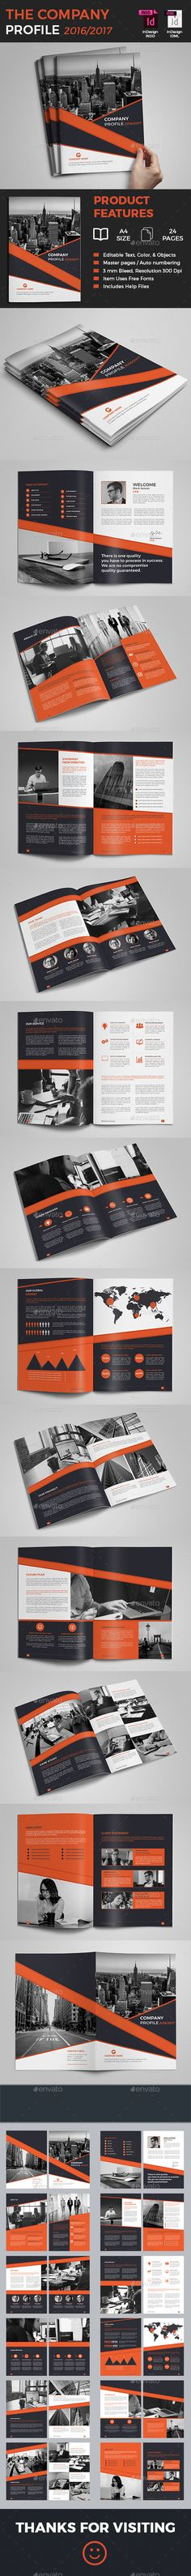 The Company Profile Brochure Template 	InDesign INDD. Download here: http://graphicriver.net/item/the-company-profile/16687558?ref=ksioks